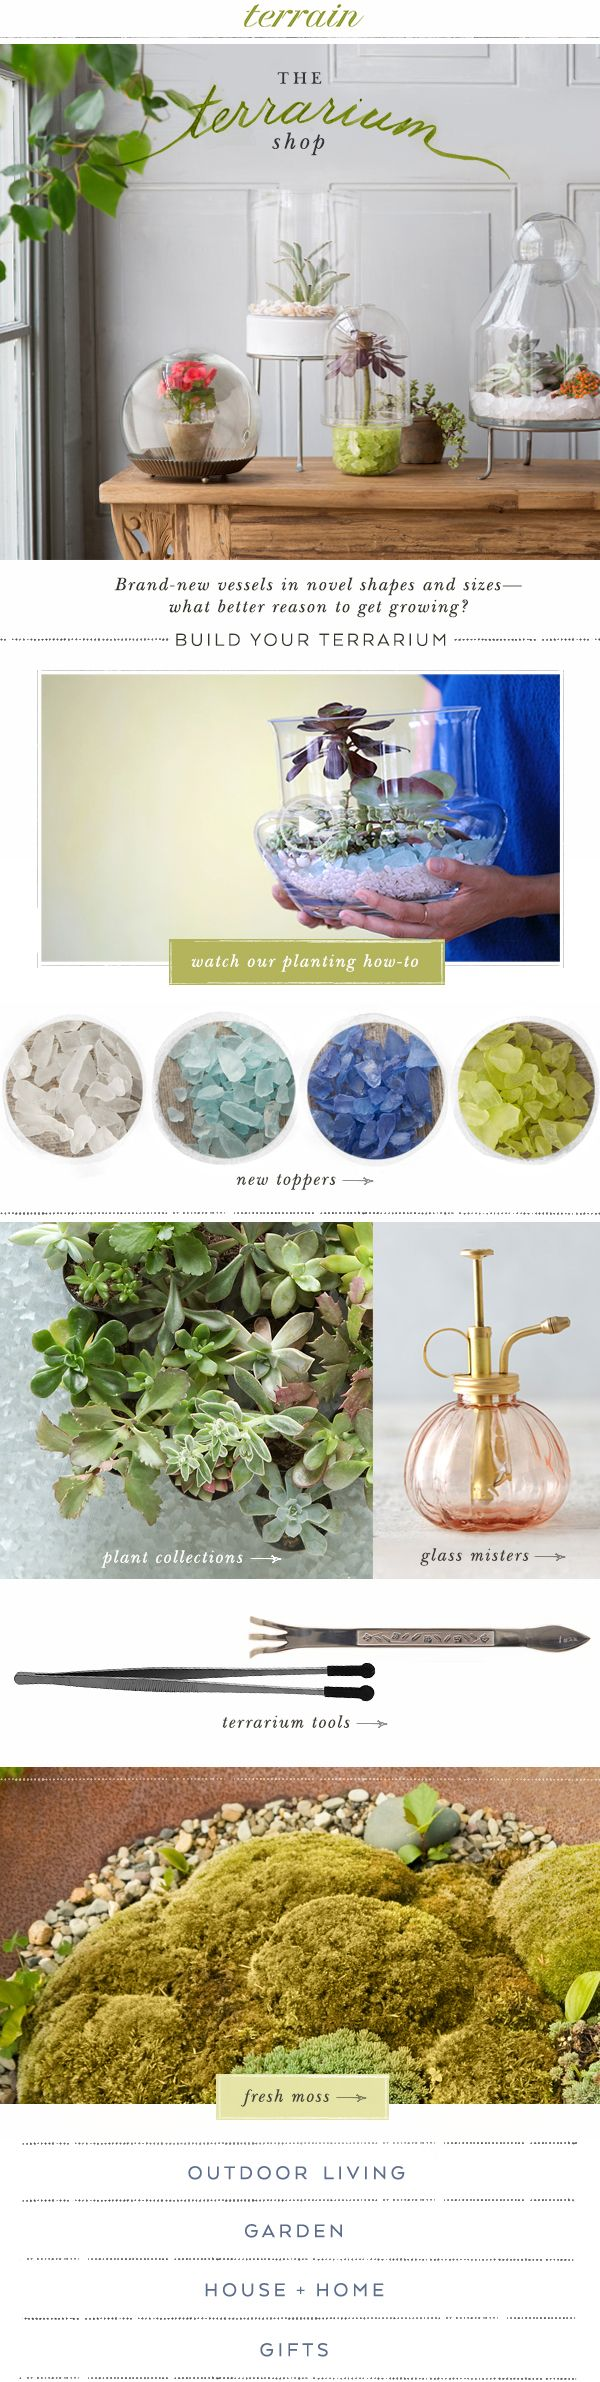 """This site looks cool! I will have to check them out, hopefully they are not too expensive COOL TIP: Target has a whole isle end racks of just stuff for terrariums! They also have realistic fake succulents for those of us without a """"green thumb'."""